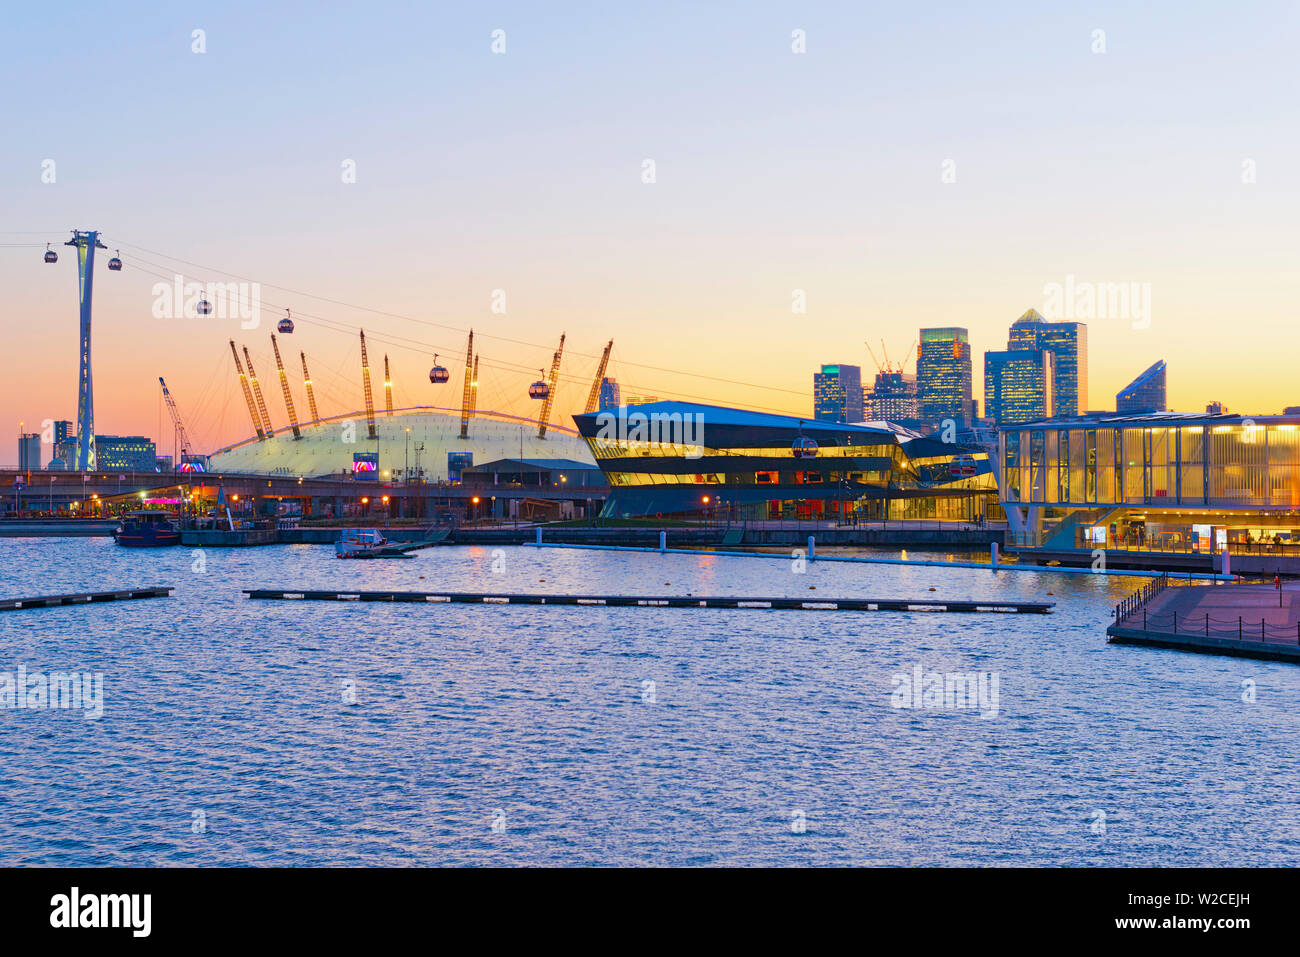 UK, England, London, Emirates Air Line or Thames Cable Car over River Thames, from Greenwich Peninsula to Royal Docks, viewed across Royal Victoria Dock Stock Photo